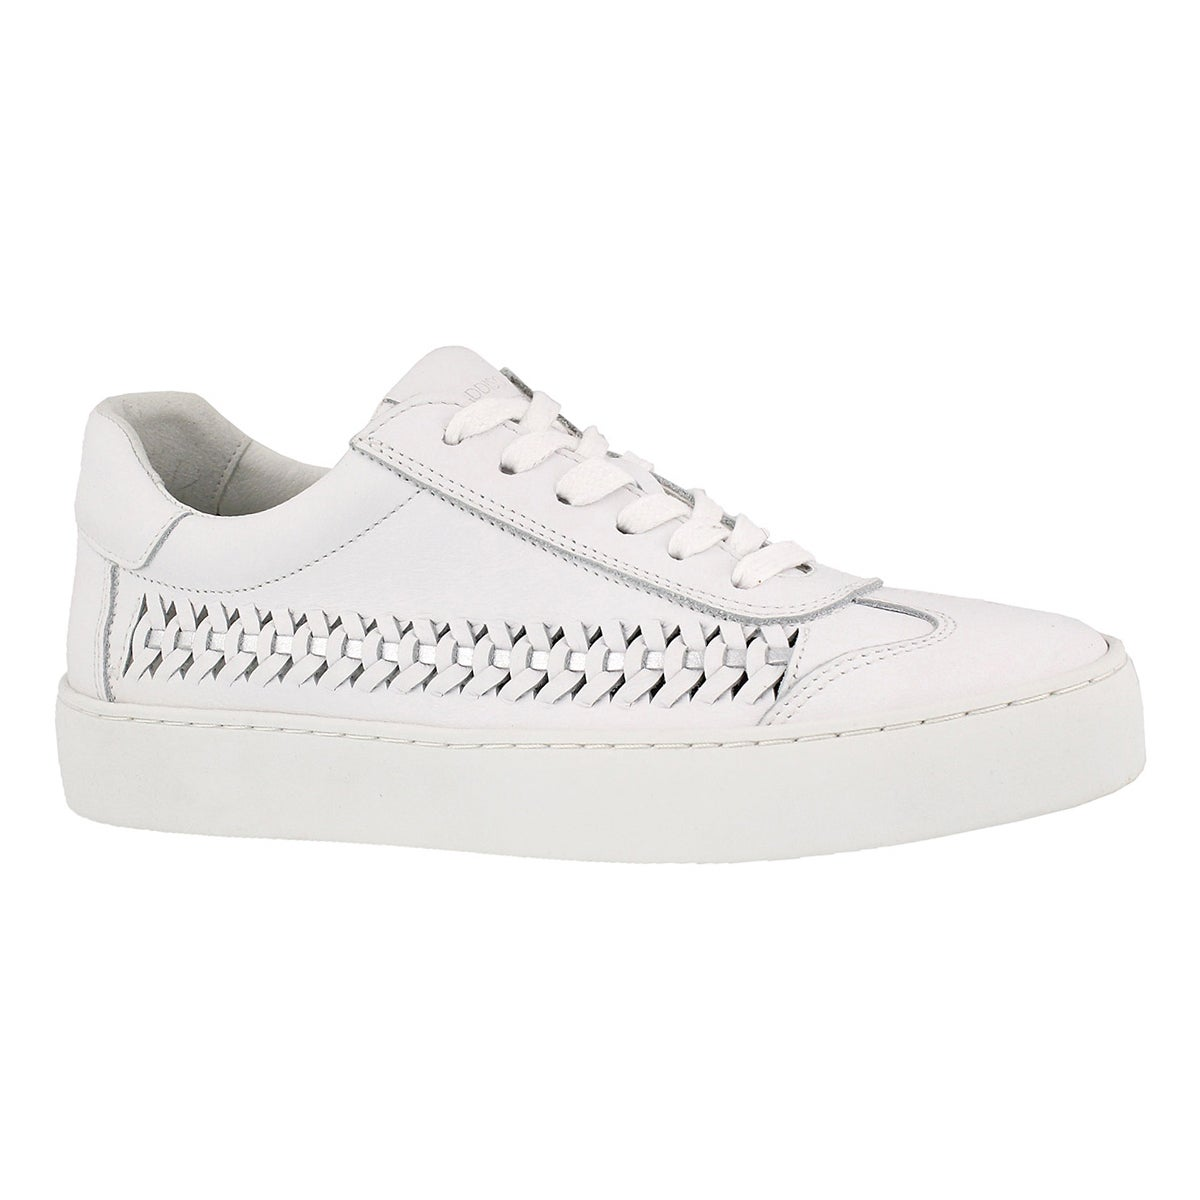 Lds Biana white casual lace up sneaker